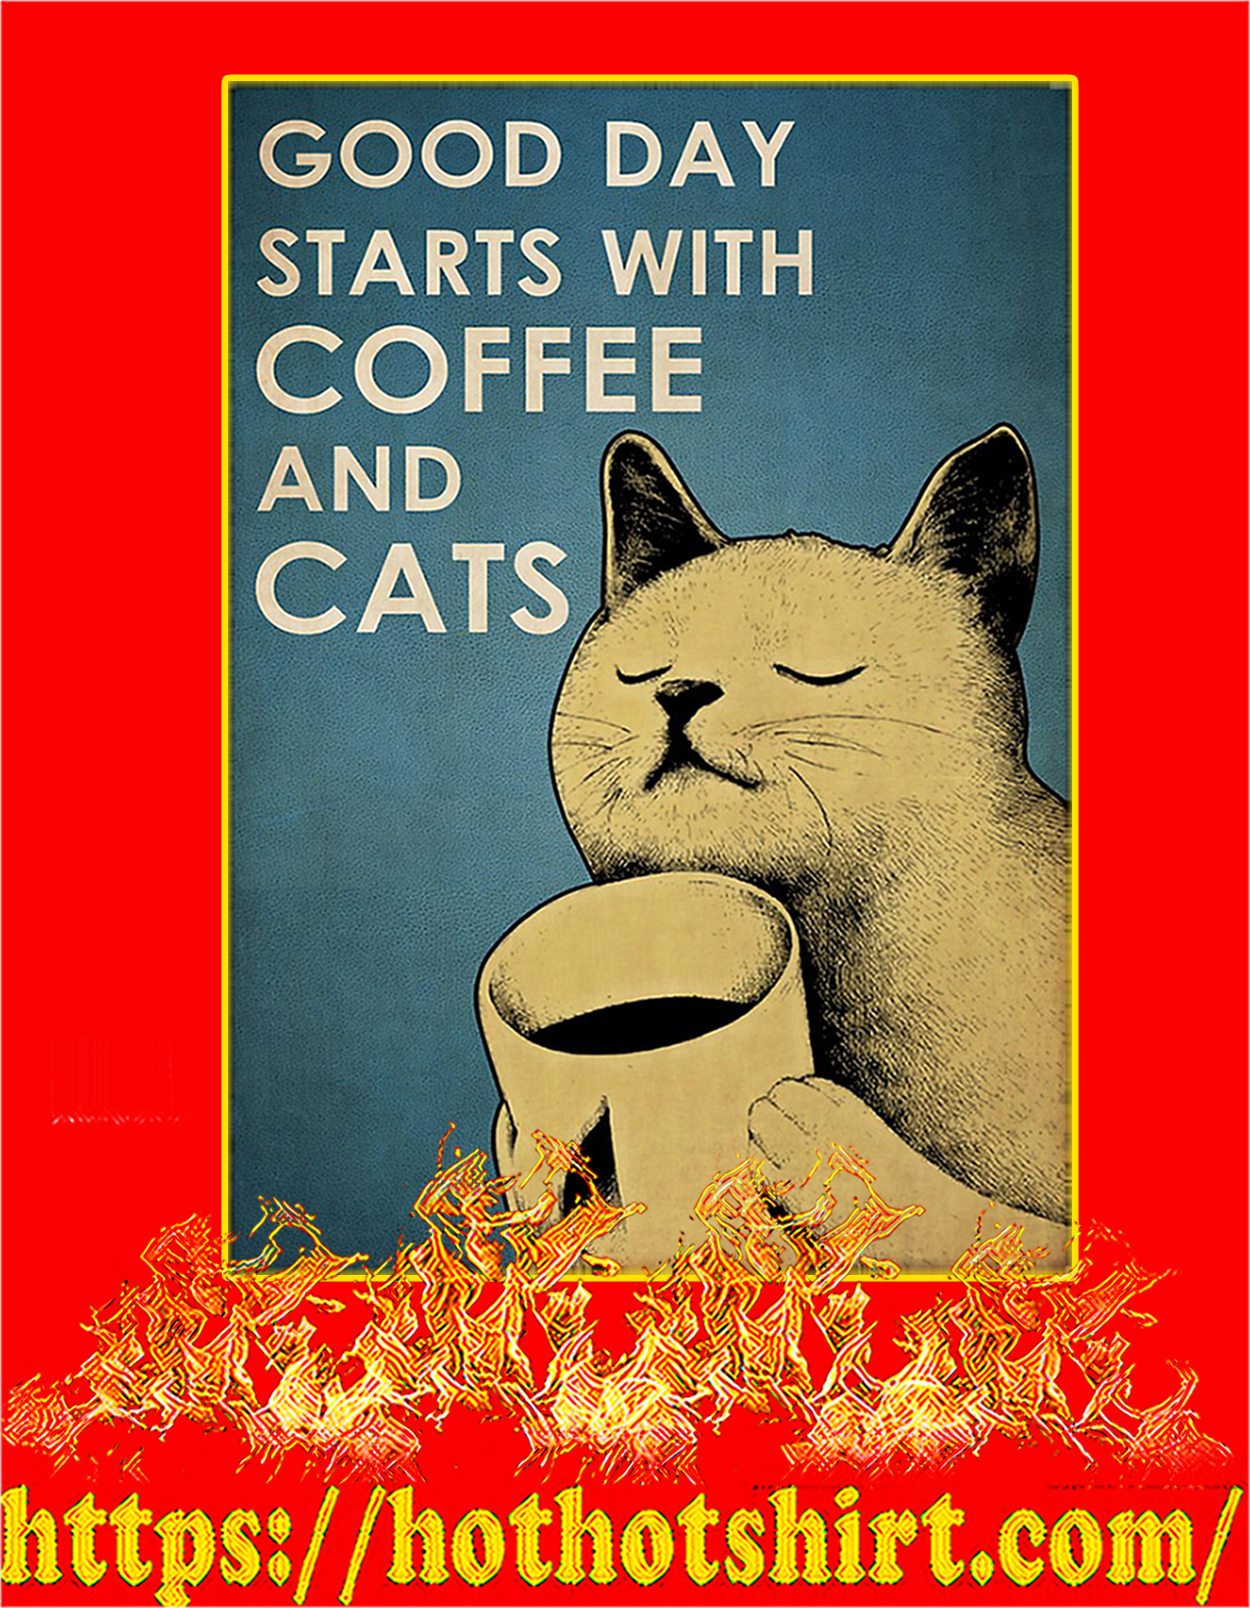 Good day starts with coffee and cats poster - A3